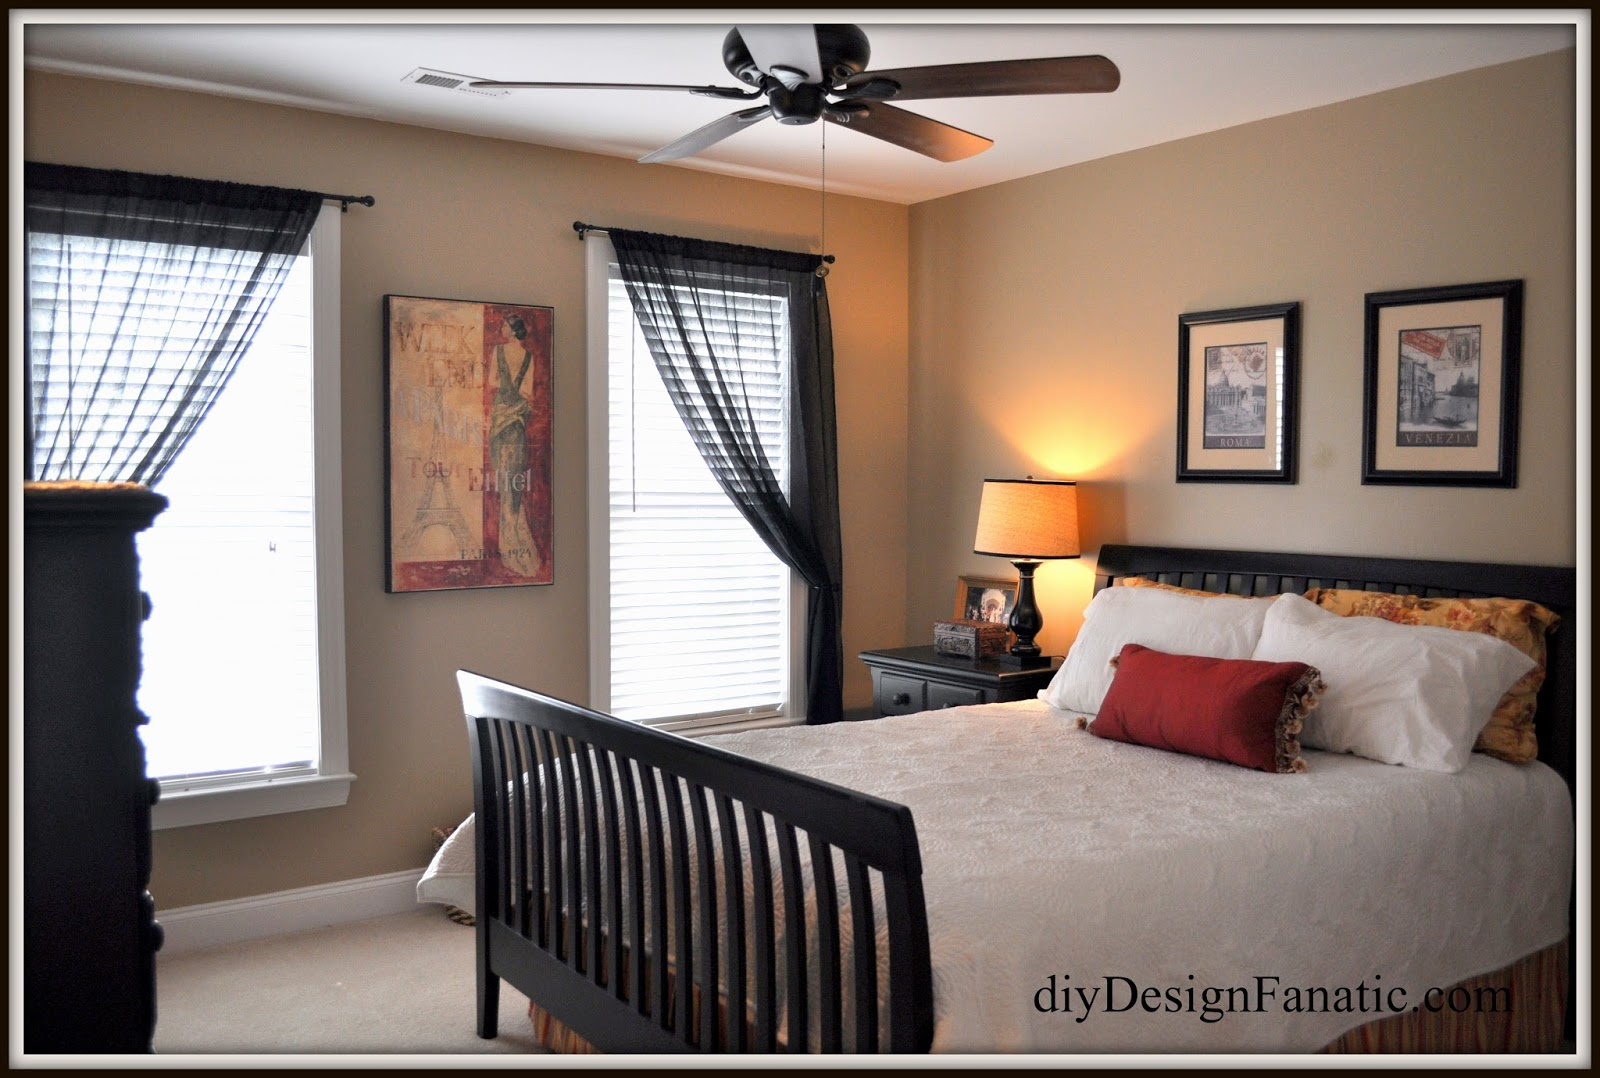 Awesome Here us how our Guest Bedroom looked before The black curtains furniture u accessories made the whole room look dark and smaller than it is